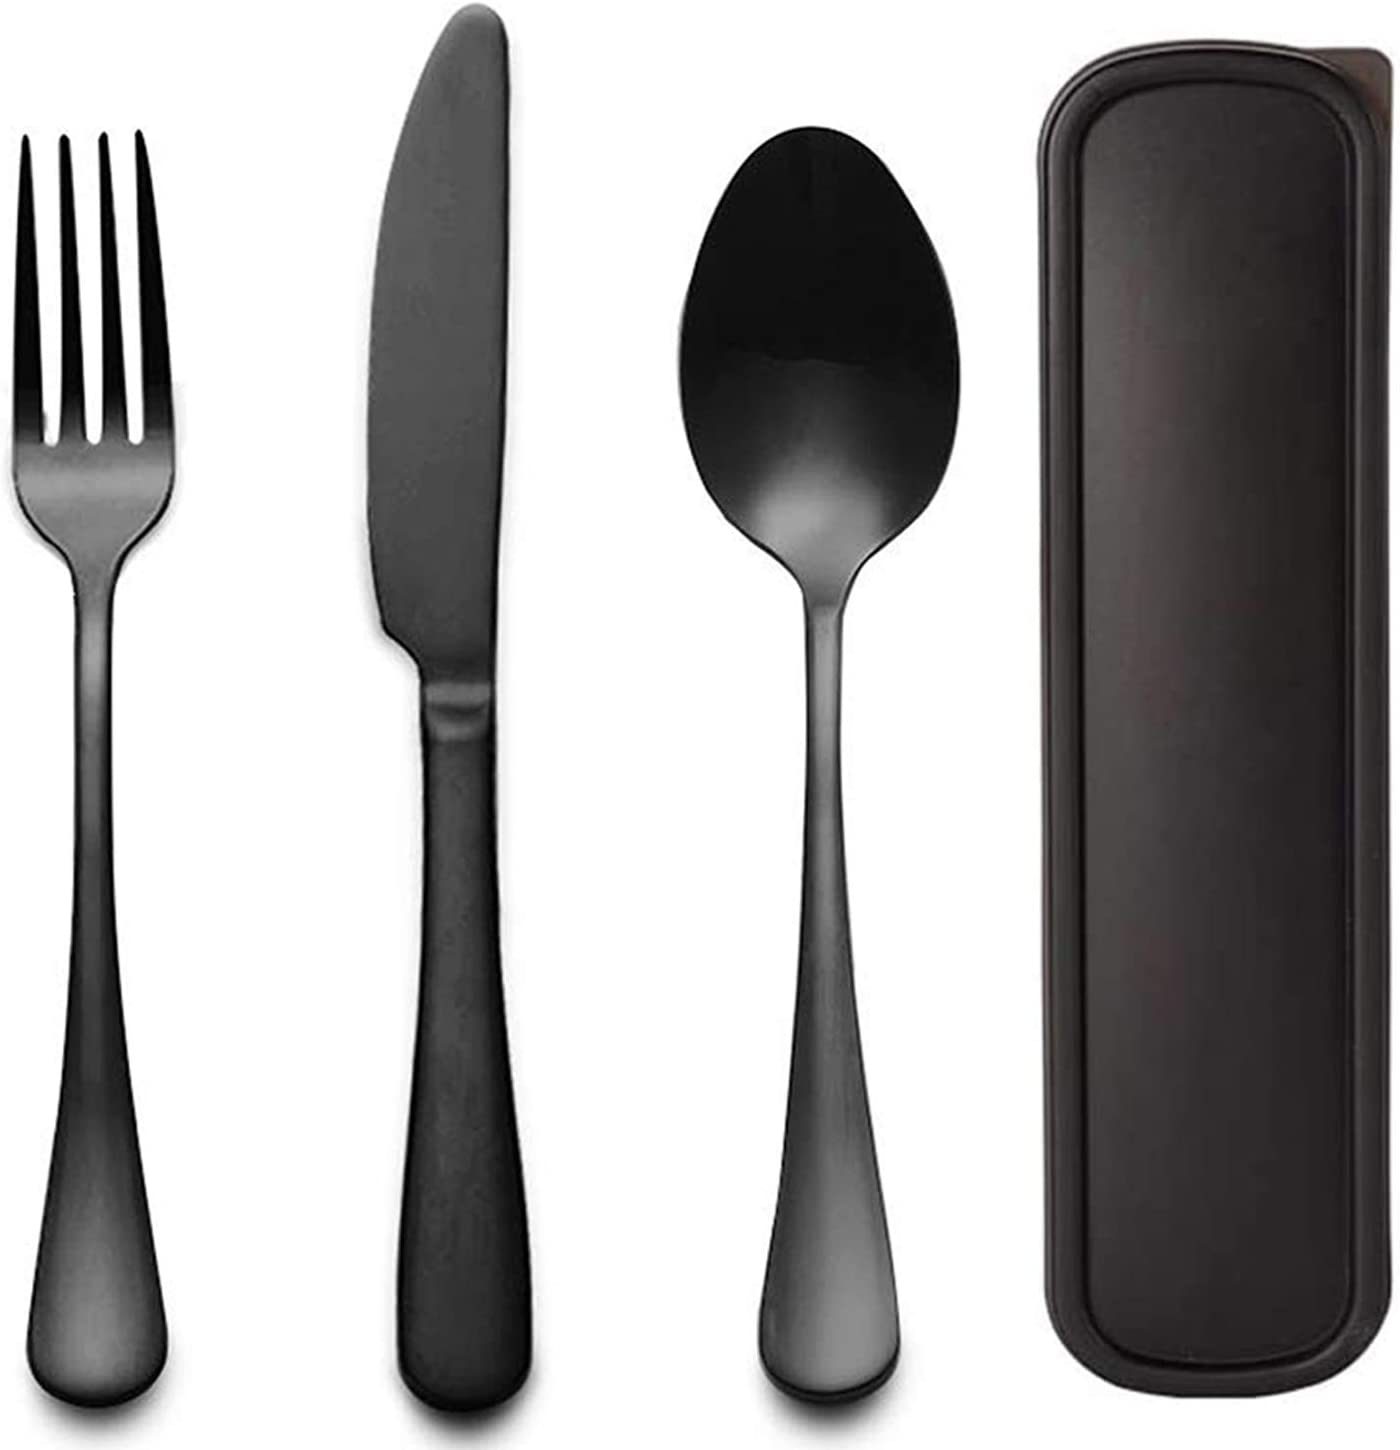 Portable Utensils Flatware Set with Case, Stainless Steel Knife Fork and Spoon Reusable Office Flatware Set Dishwasher Safe (Black)